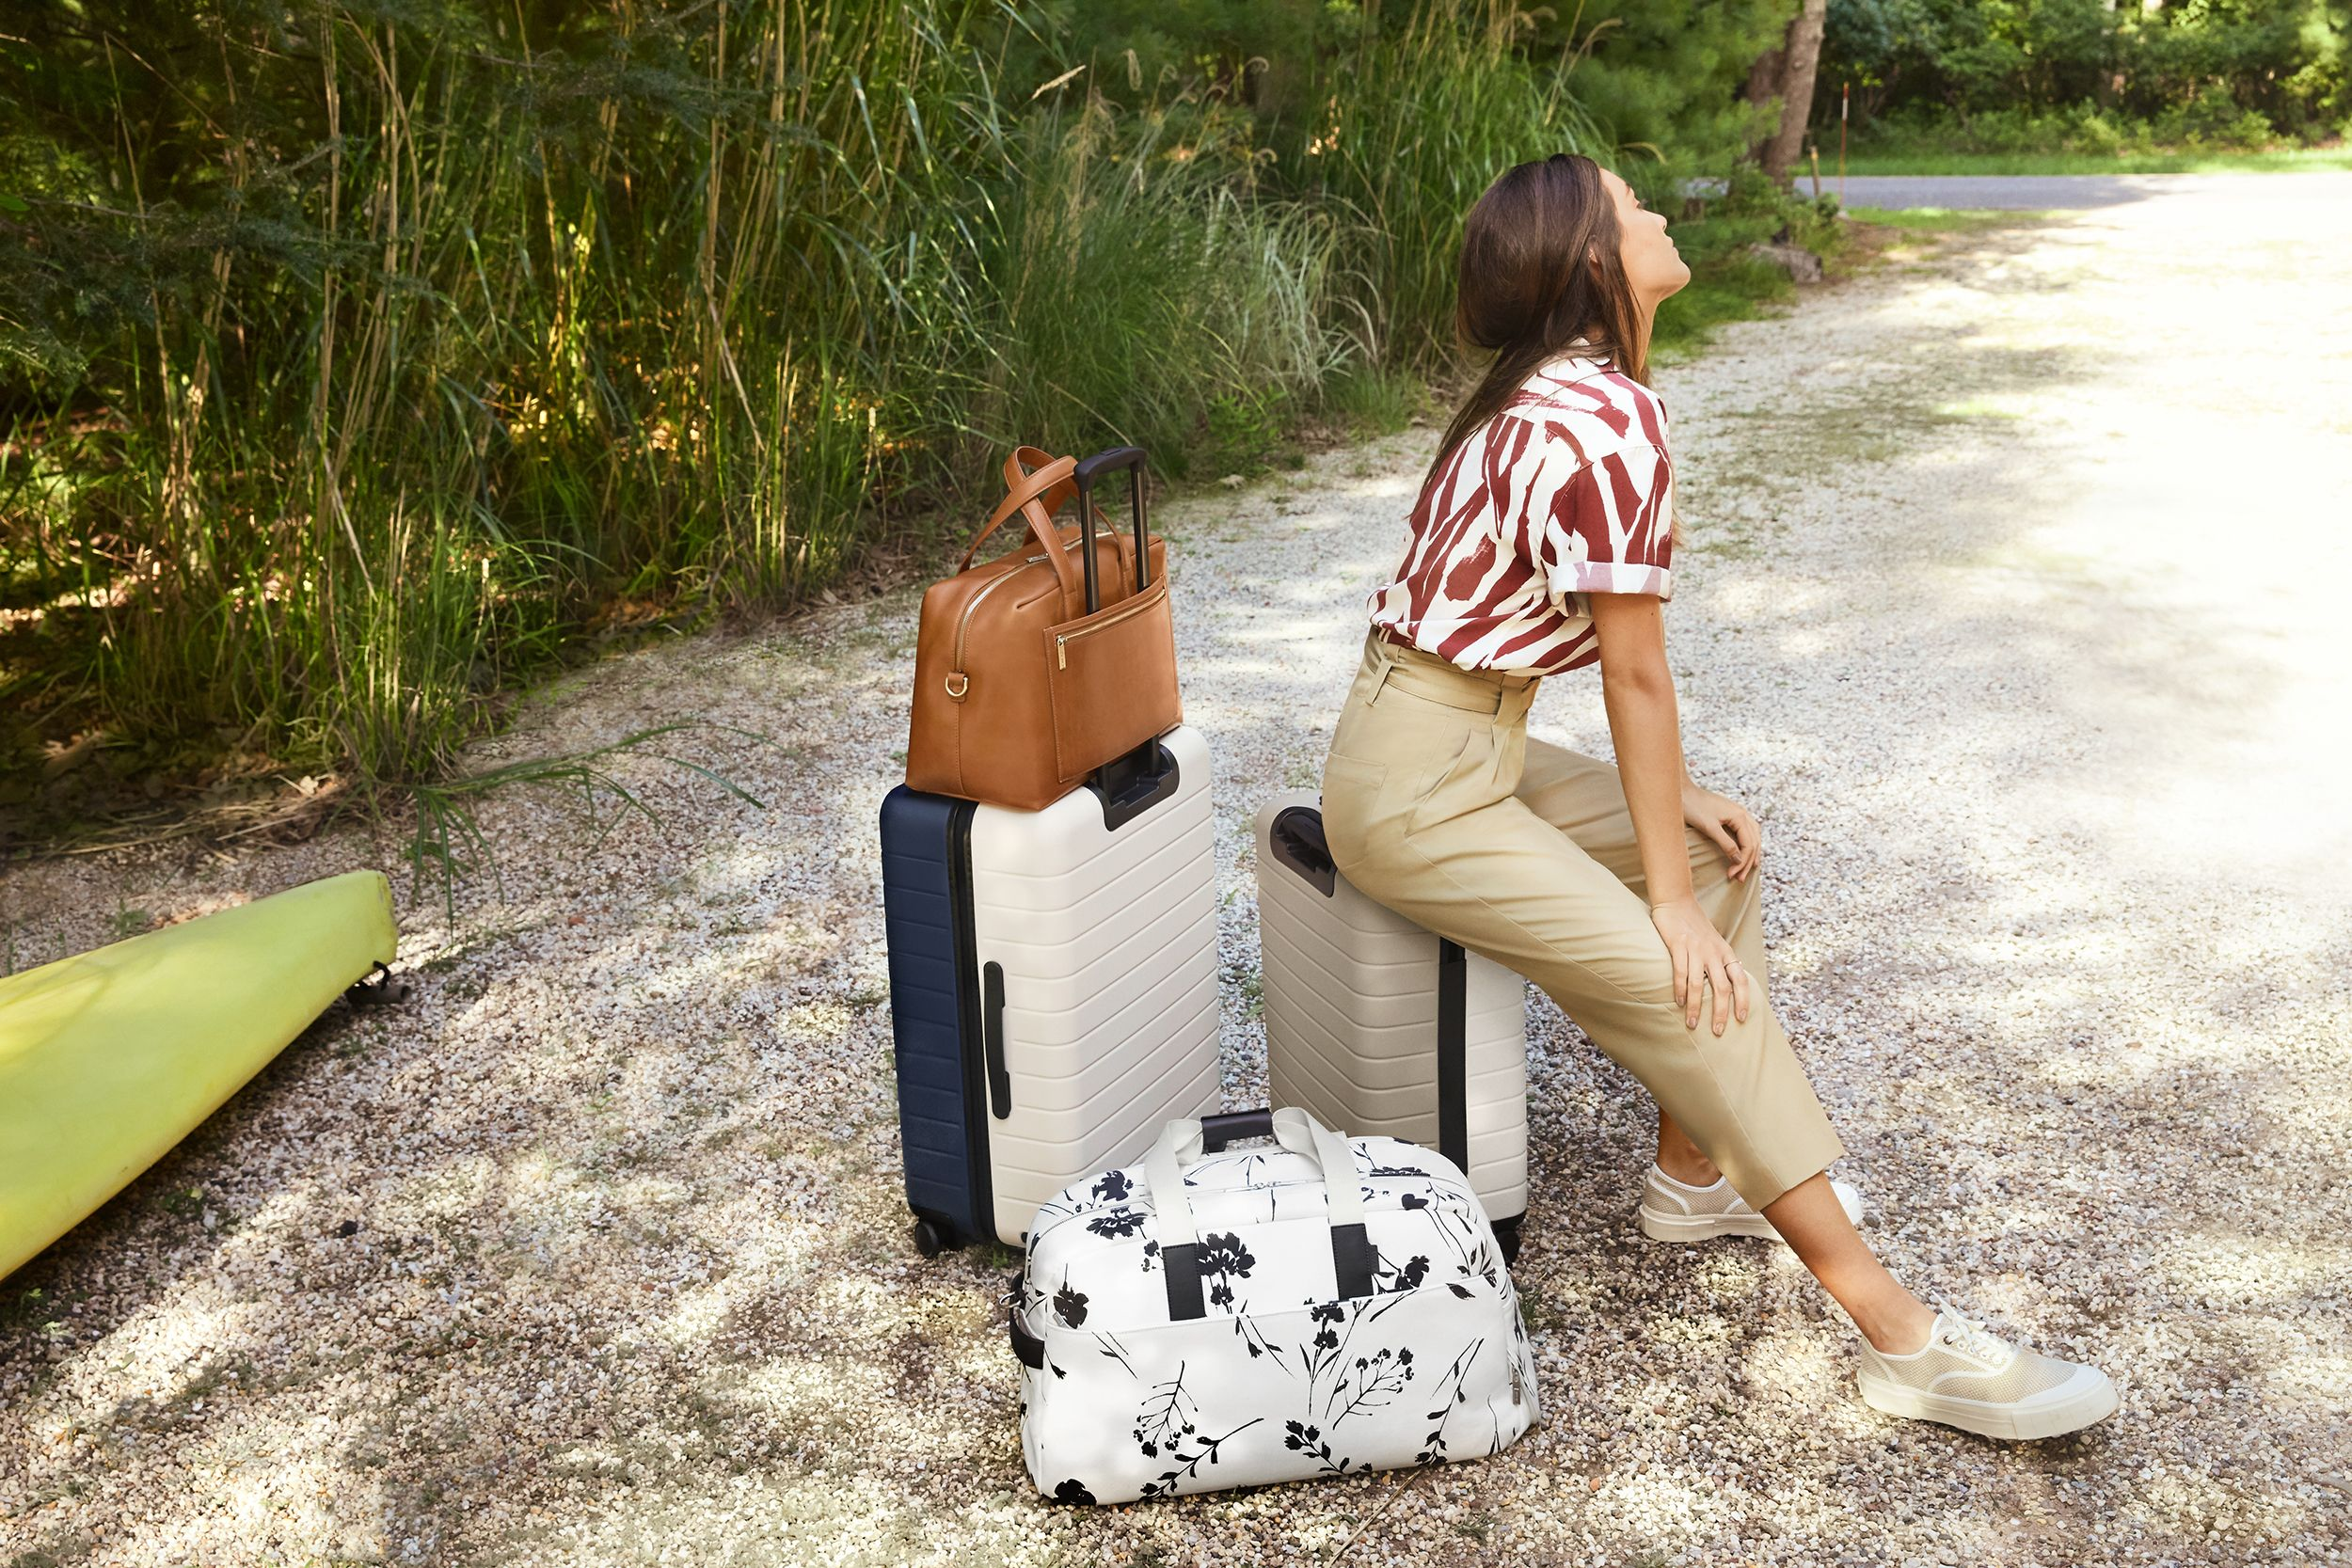 36a1665110 Zerchoo Lifestyle - Away's new beach-inspired luggage collection is ...